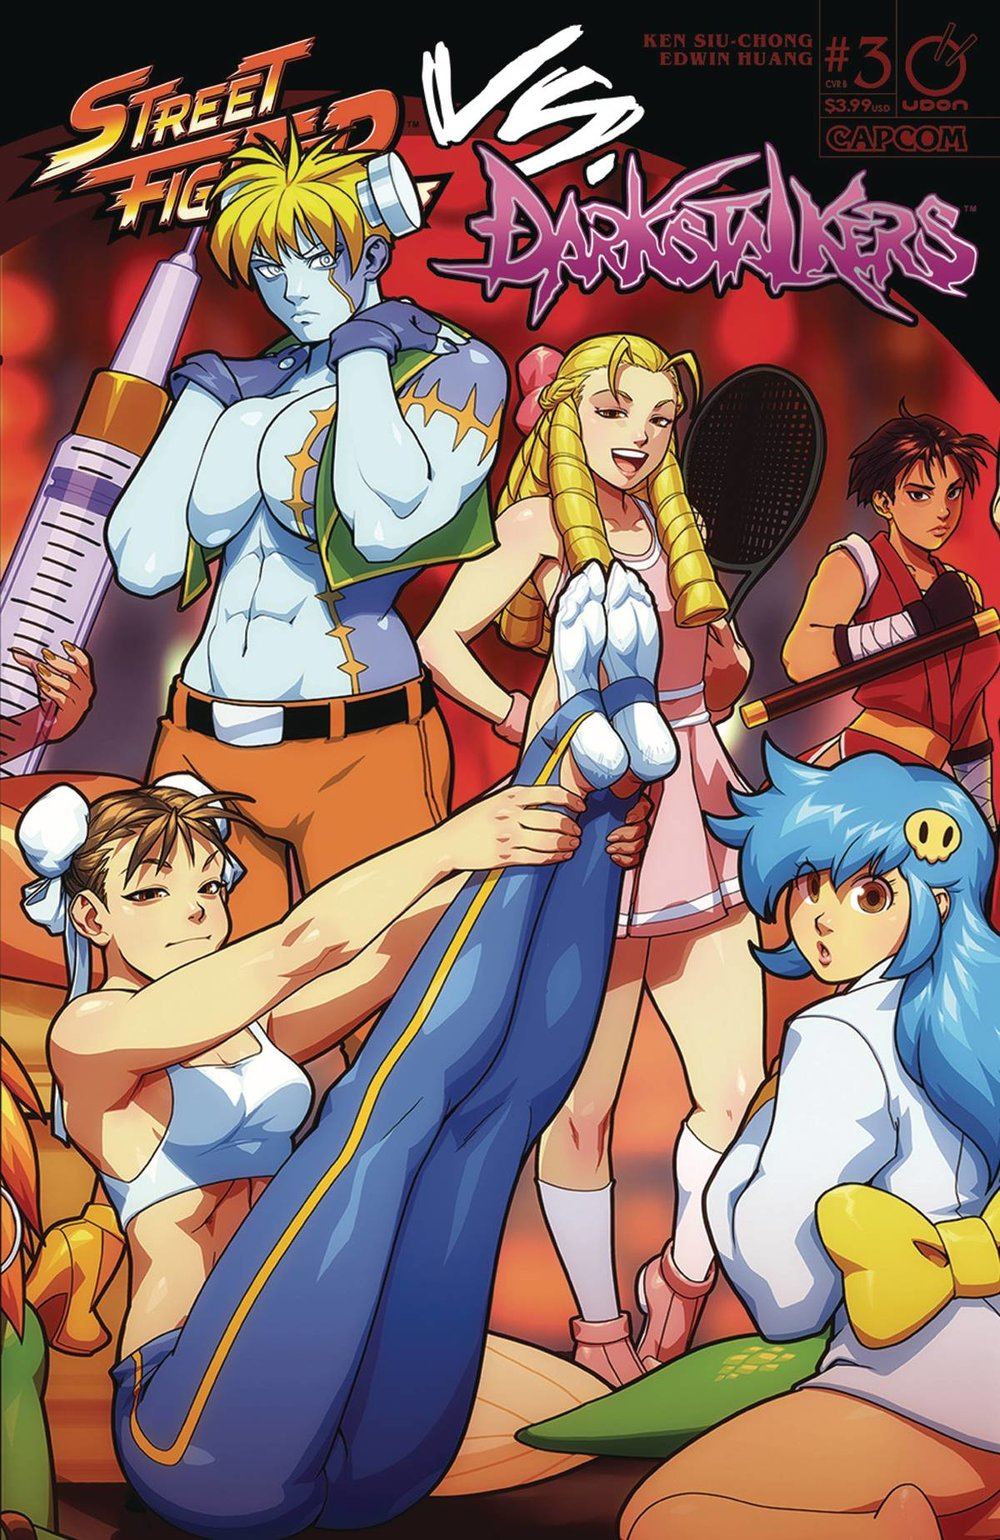 STREET FIGHTER VS DARKSTALKERS 3 of 8 CVR B PORTER.jpg